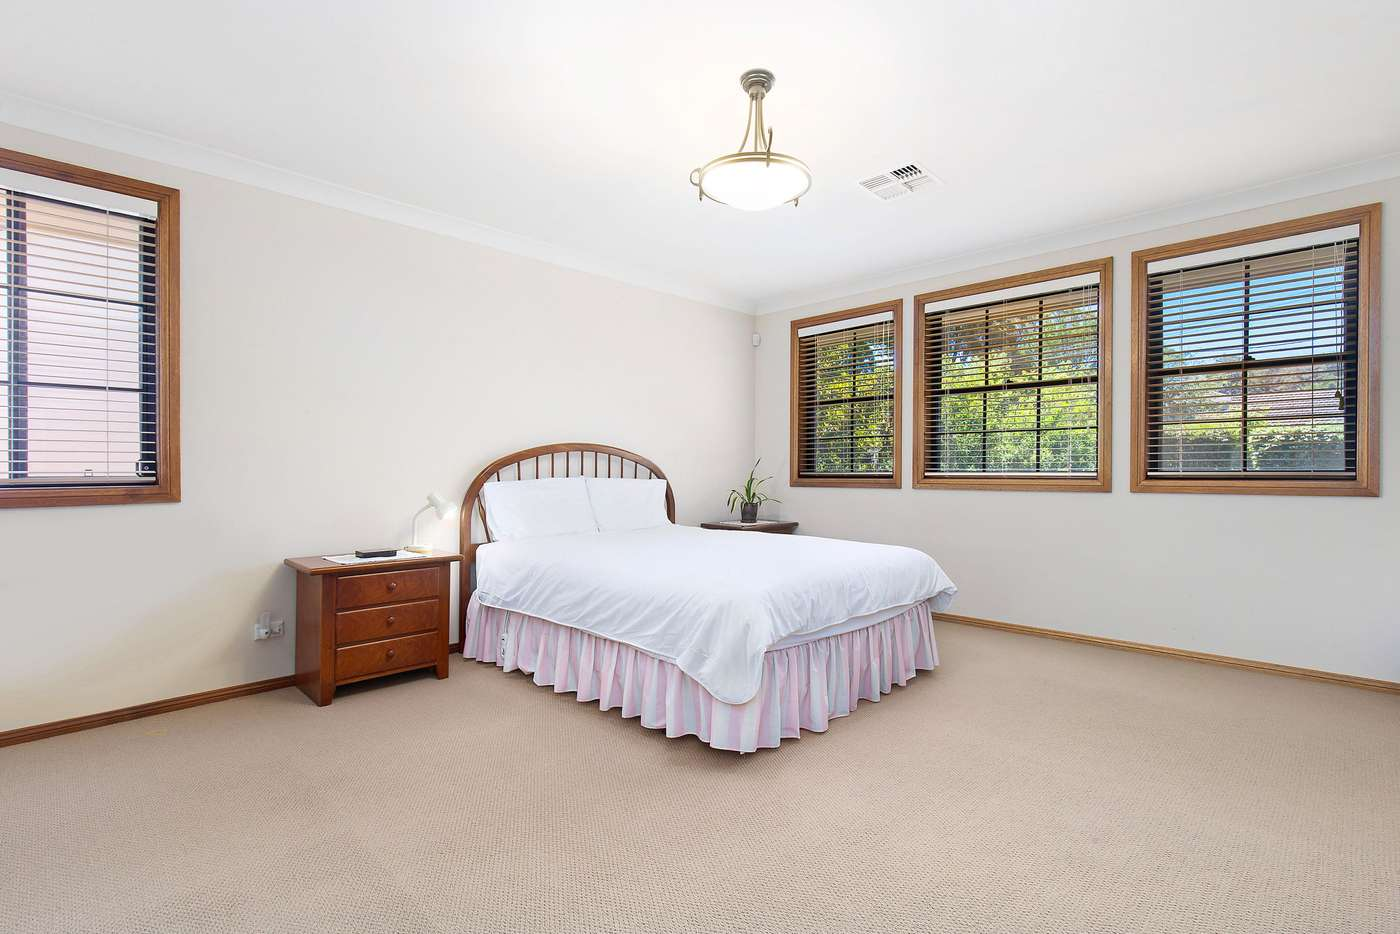 Fifth view of Homely house listing, 10A Courallie Avenue, Pymble NSW 2073